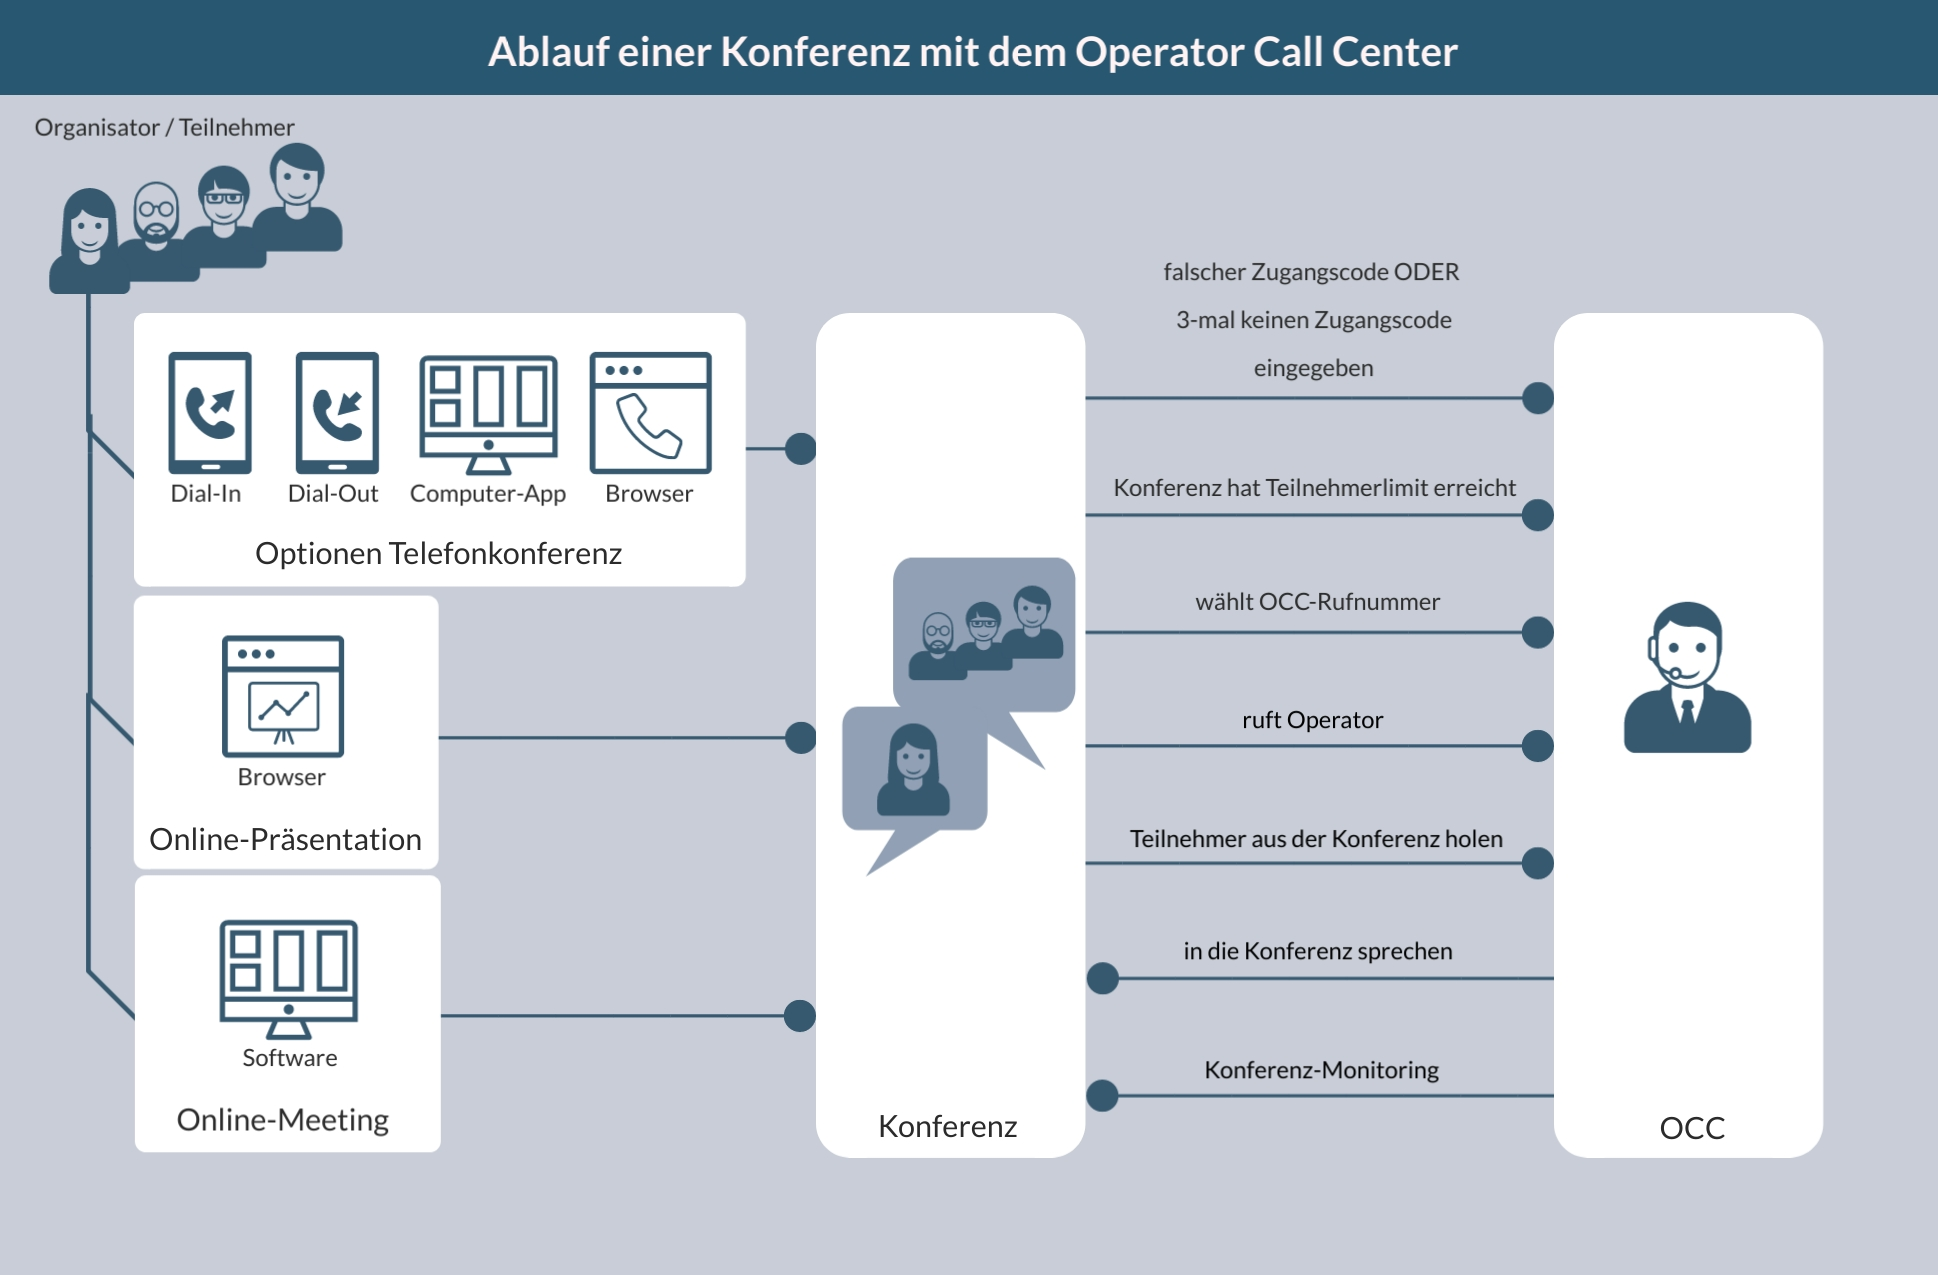 Operator Call Center Ablauf